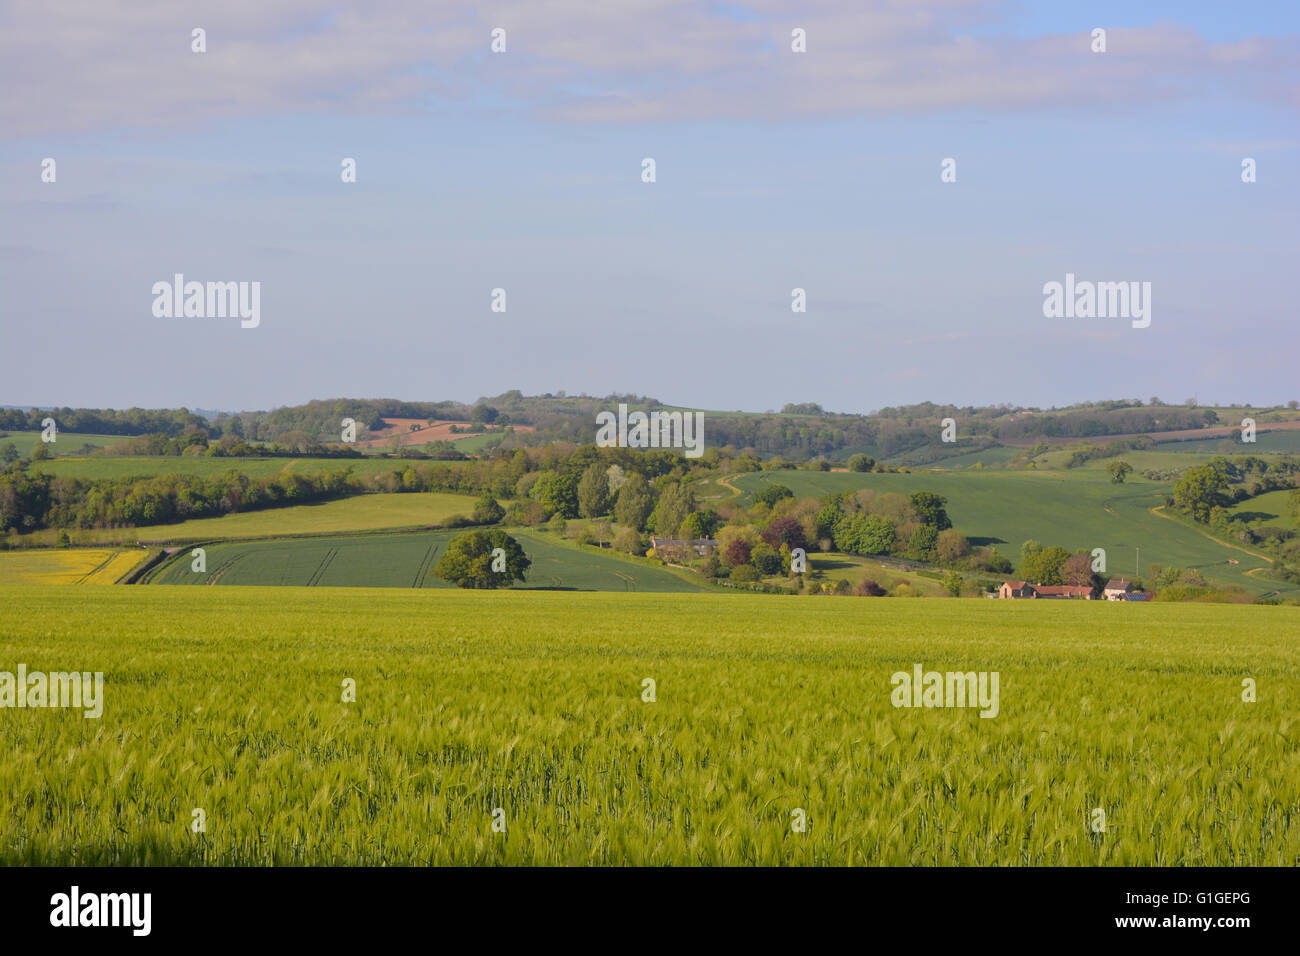 English summer landscape. Looking across wheat field near Blackford in rural Somerset, England - Stock Image